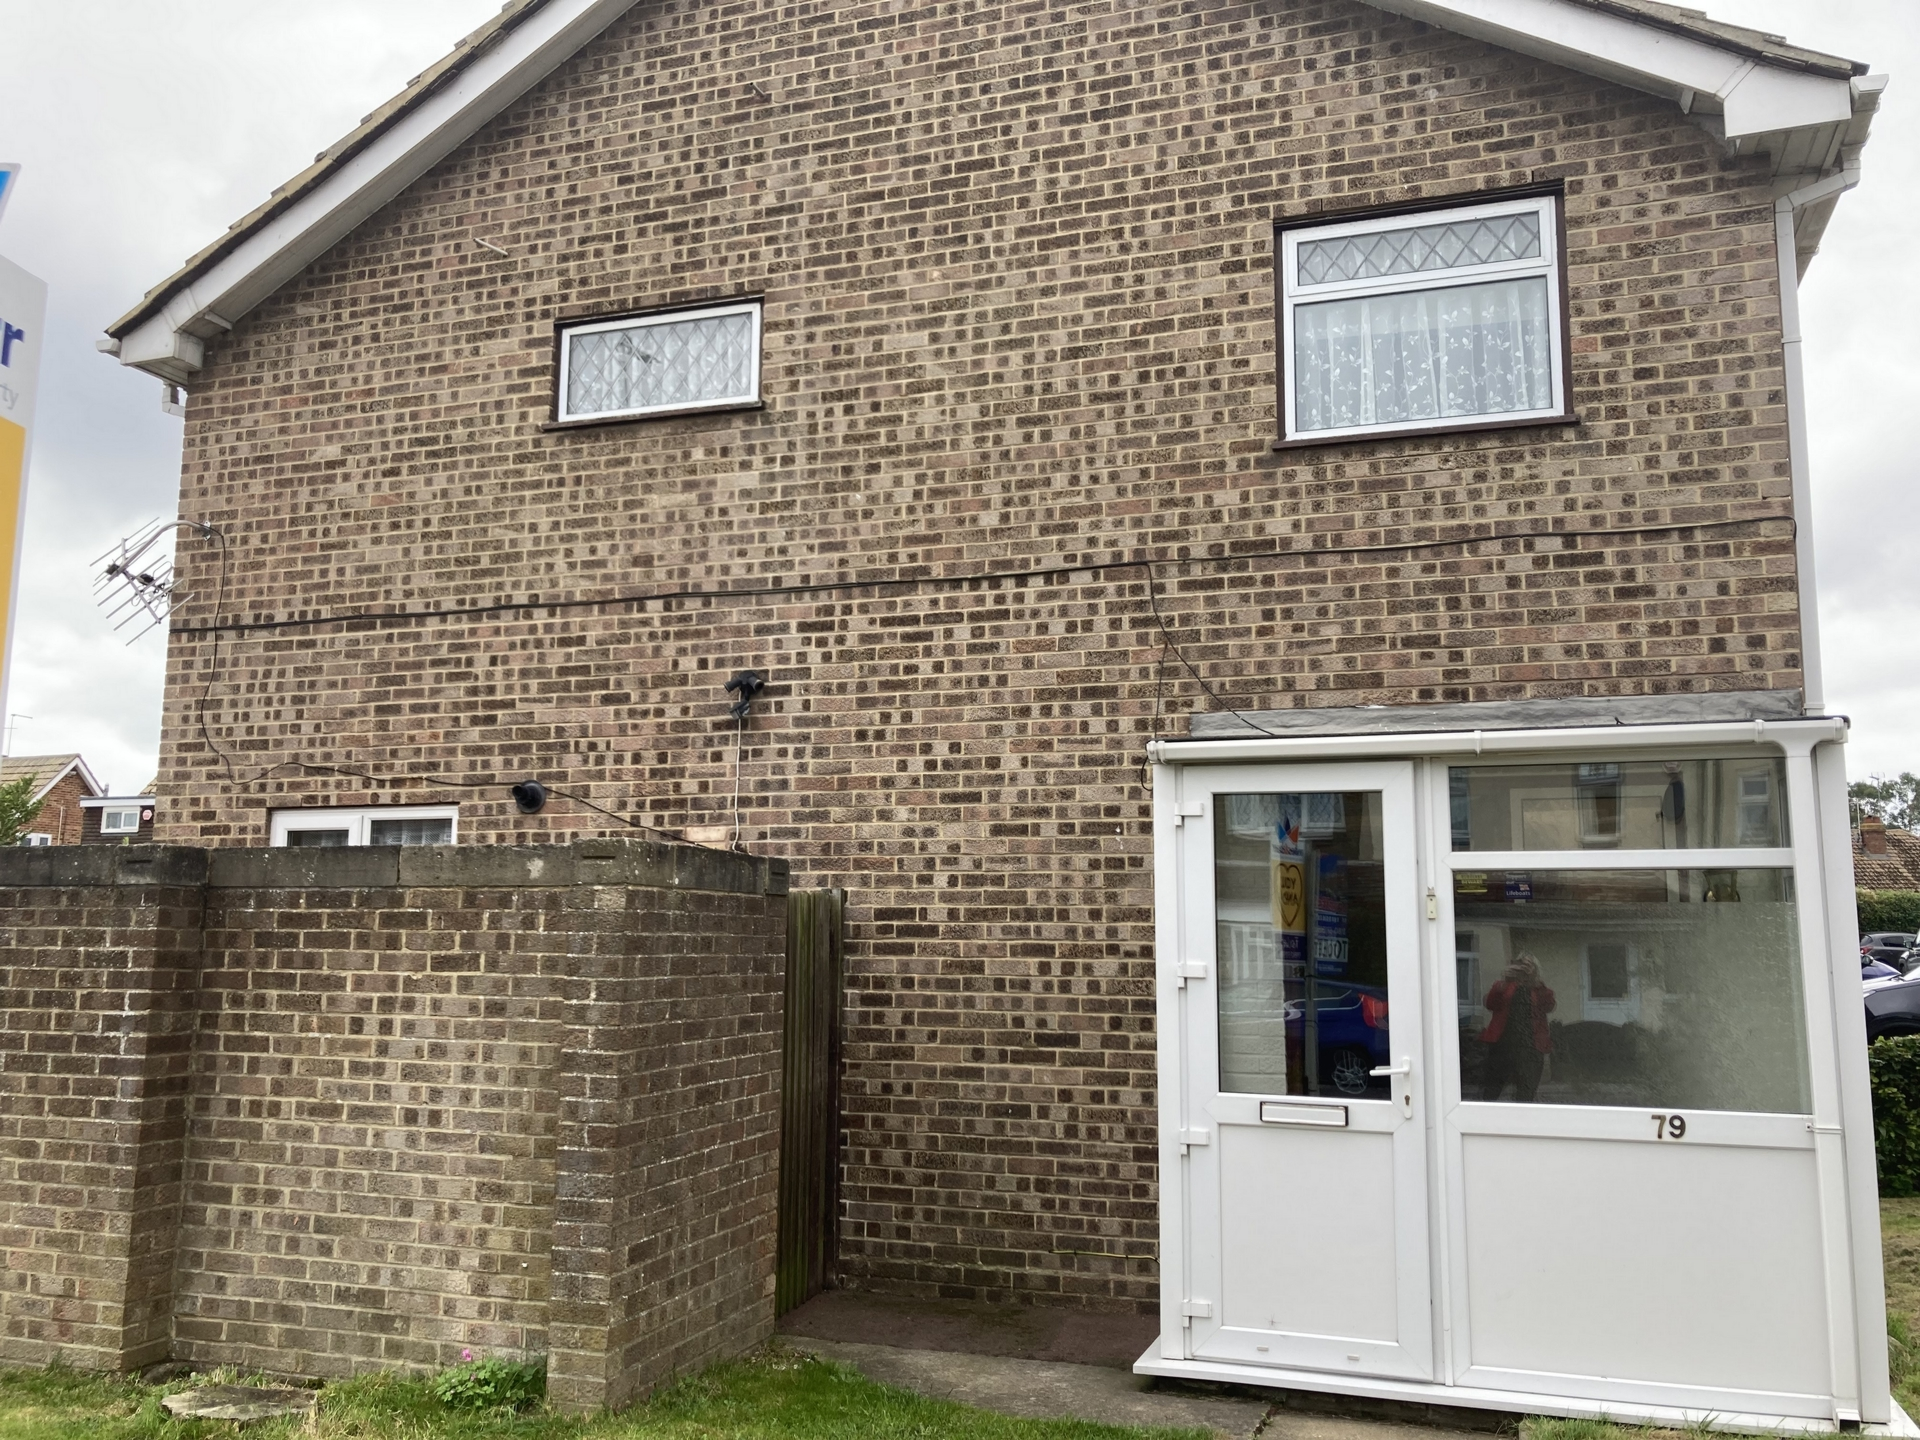 3 bed house to rent in Rumfields Road, Broadstairs, CT10